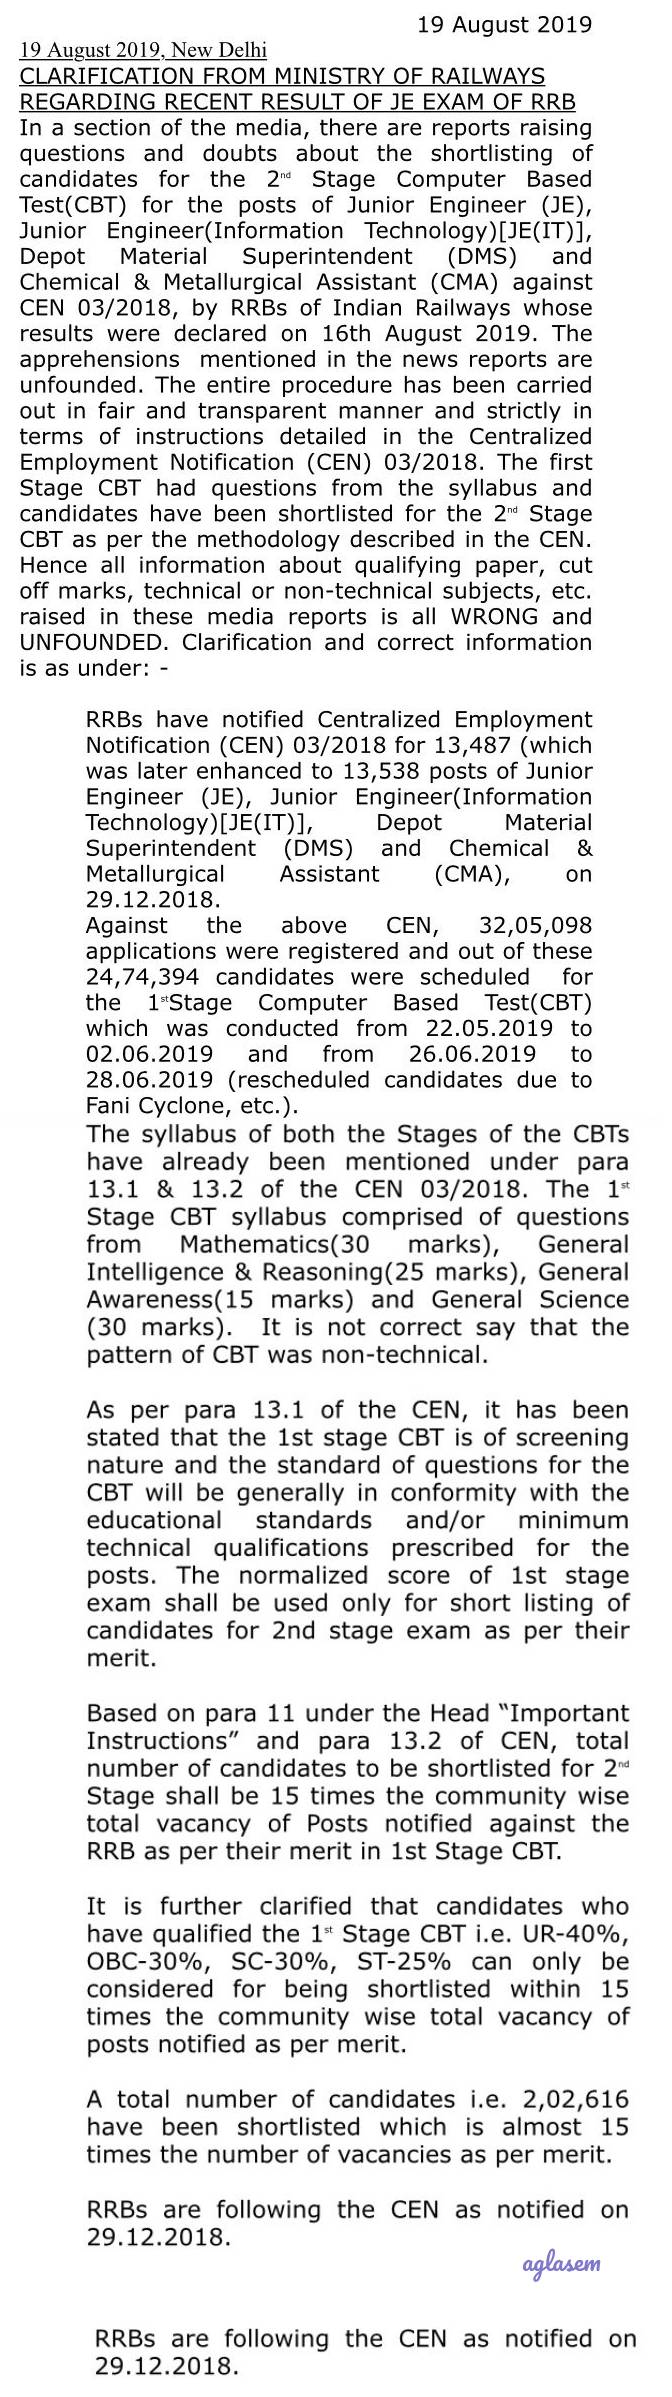 Ministry of Railways publishes clarification on RRB JE Result 2019 on Twitter in light of protests, says RRBs are following CEN